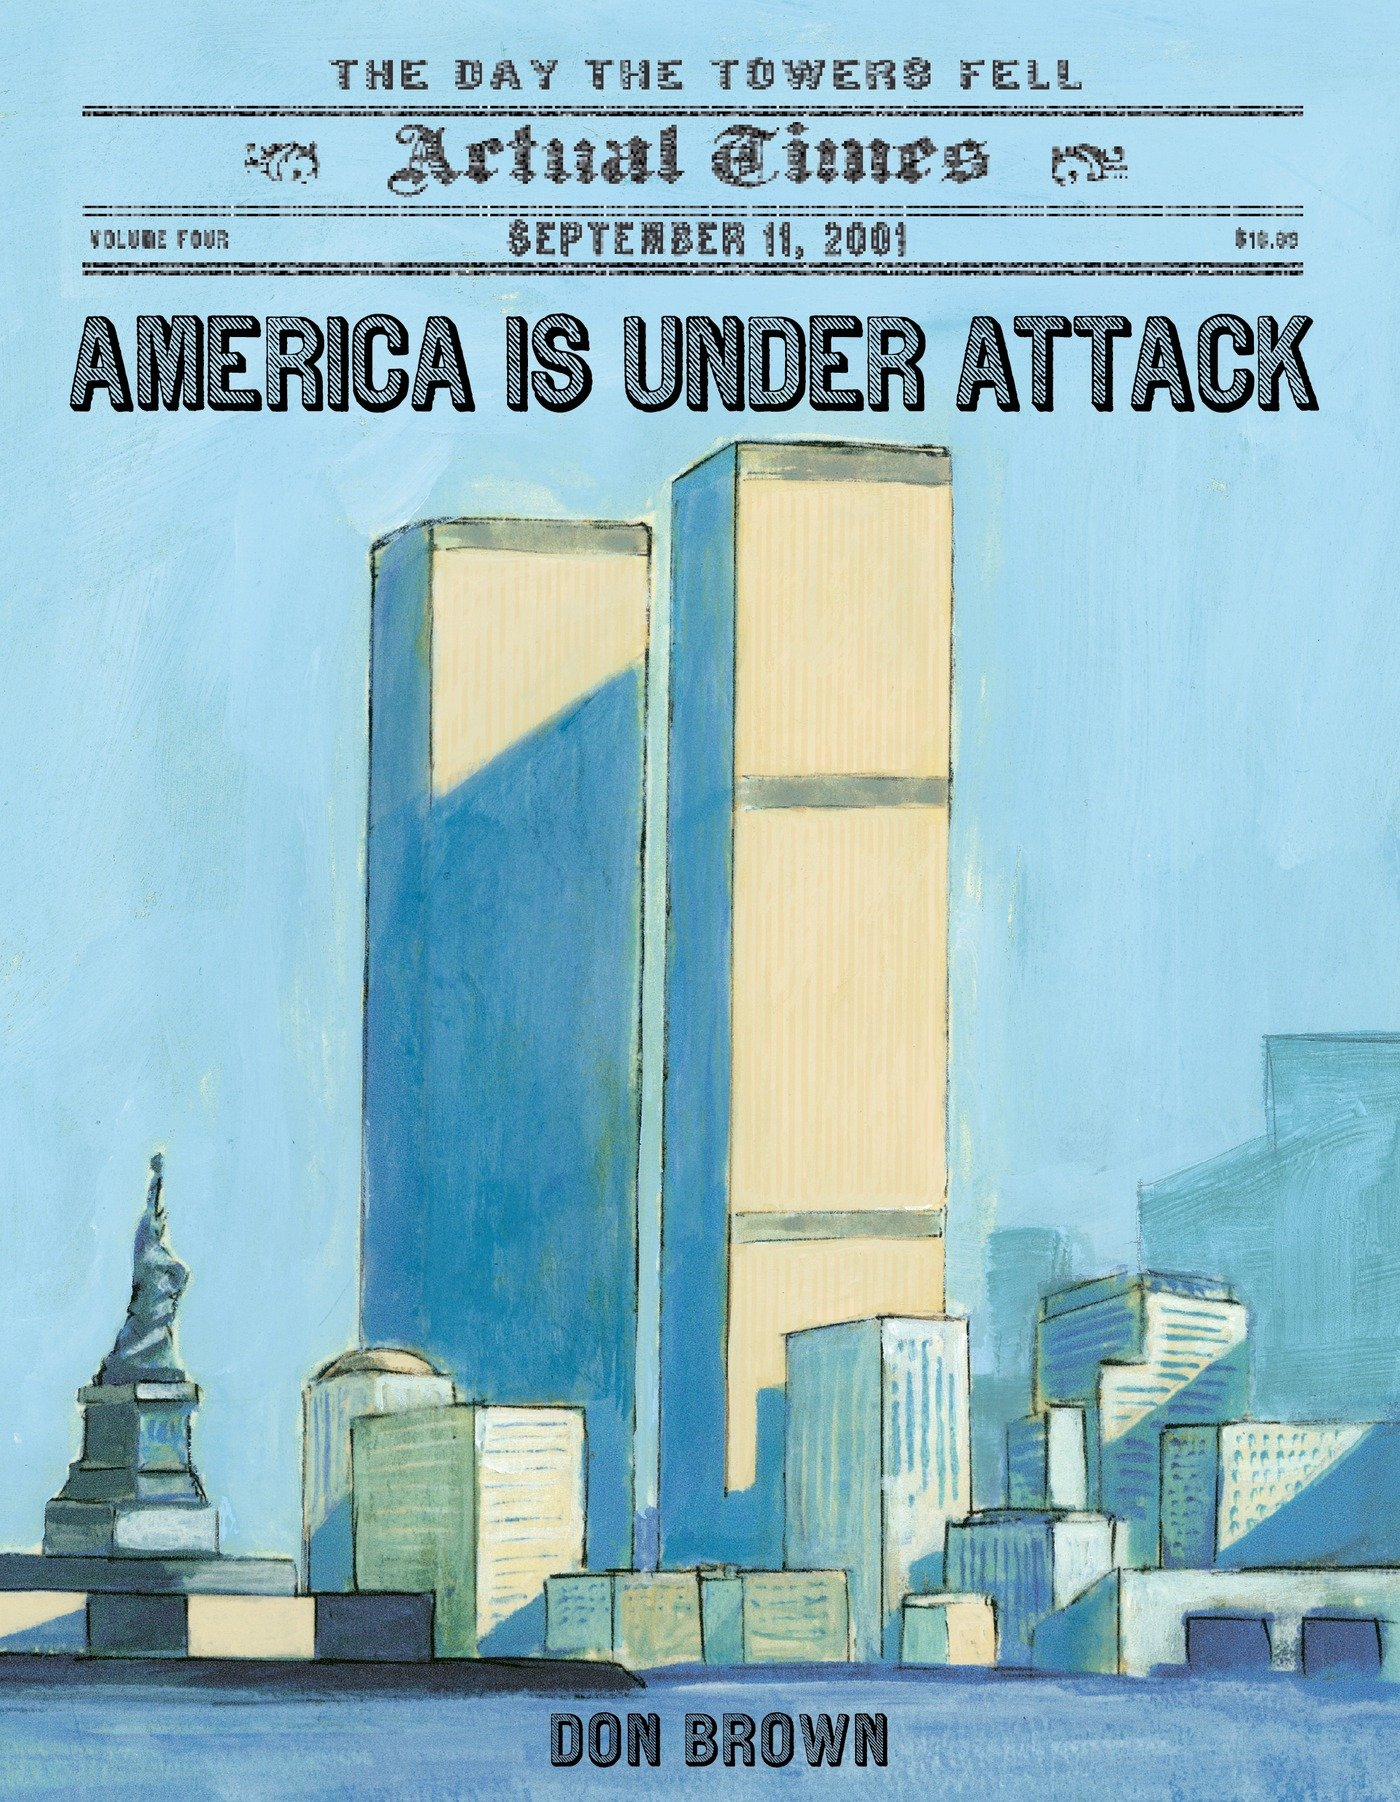 Amazon.com: America Is Under Attack: September 11, 2001: The Day ...